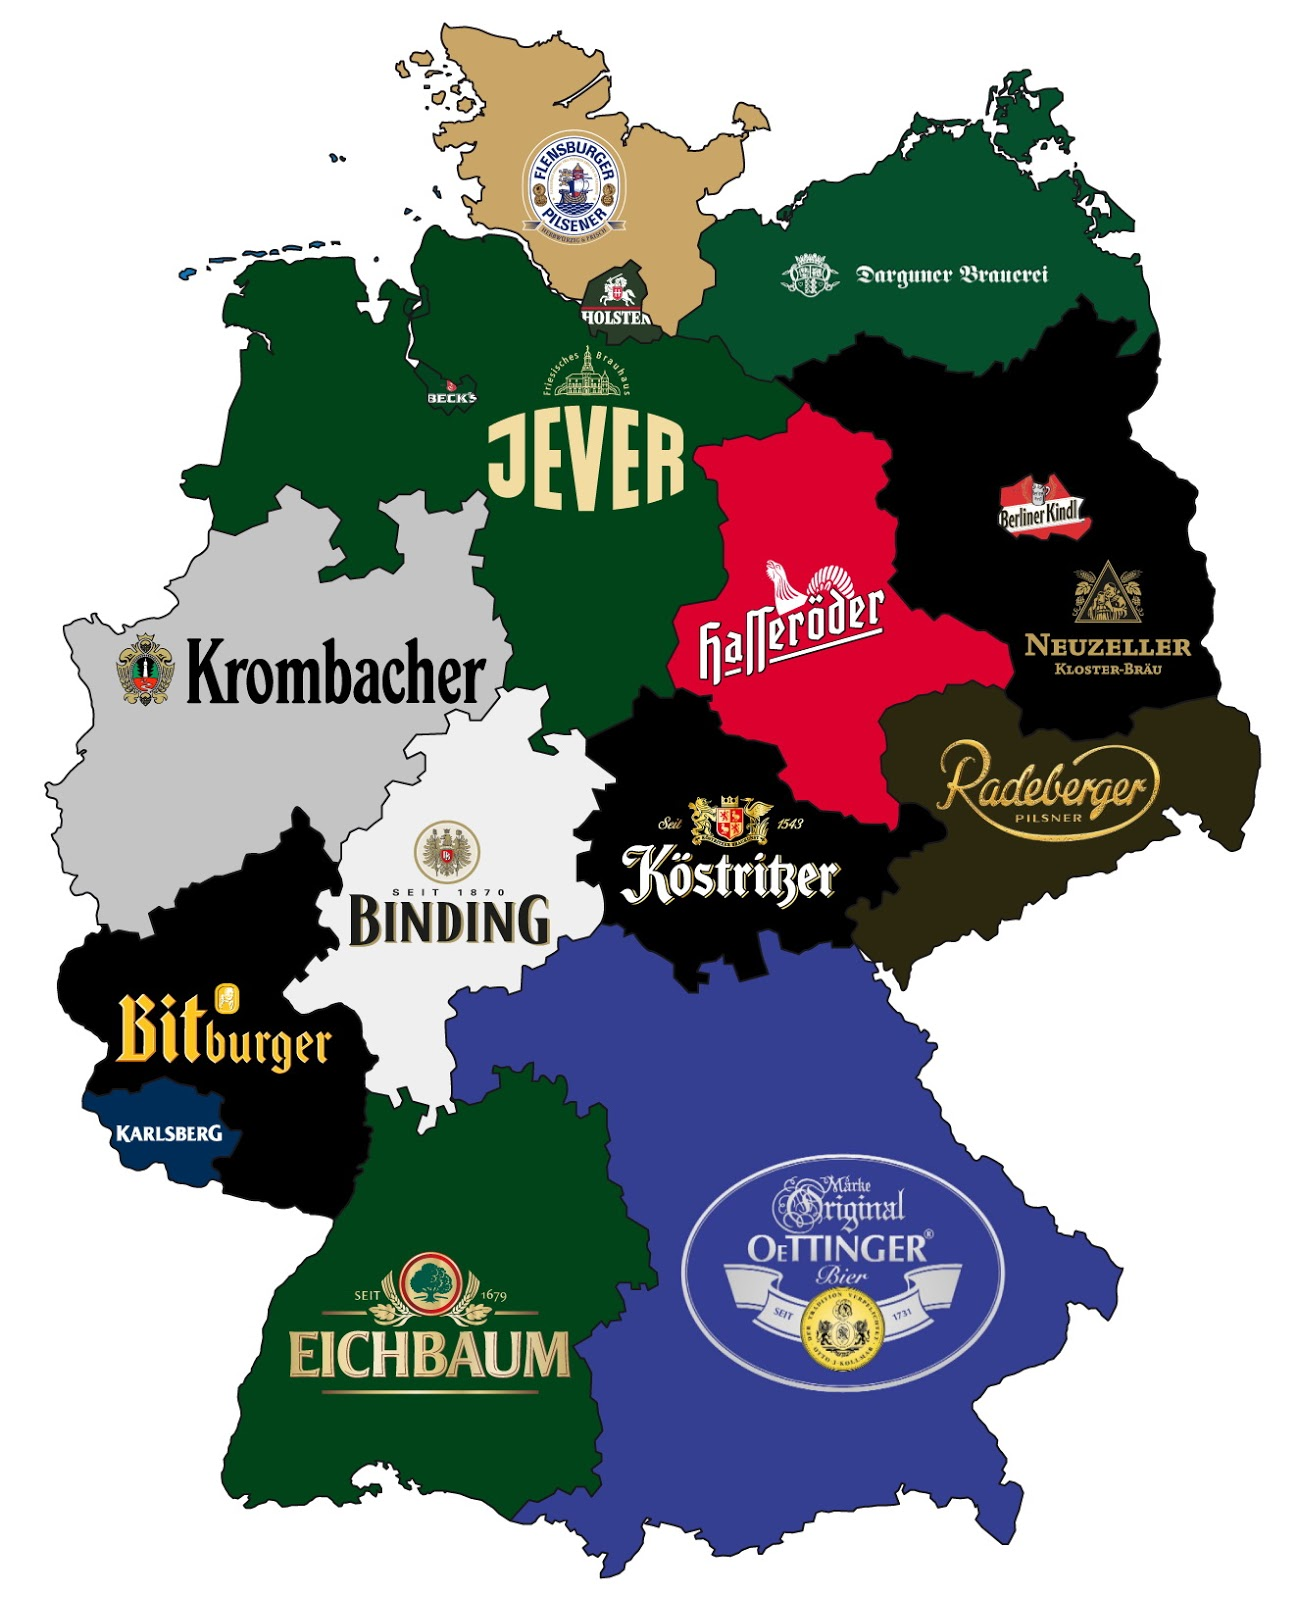 Most popular beer brand by German state